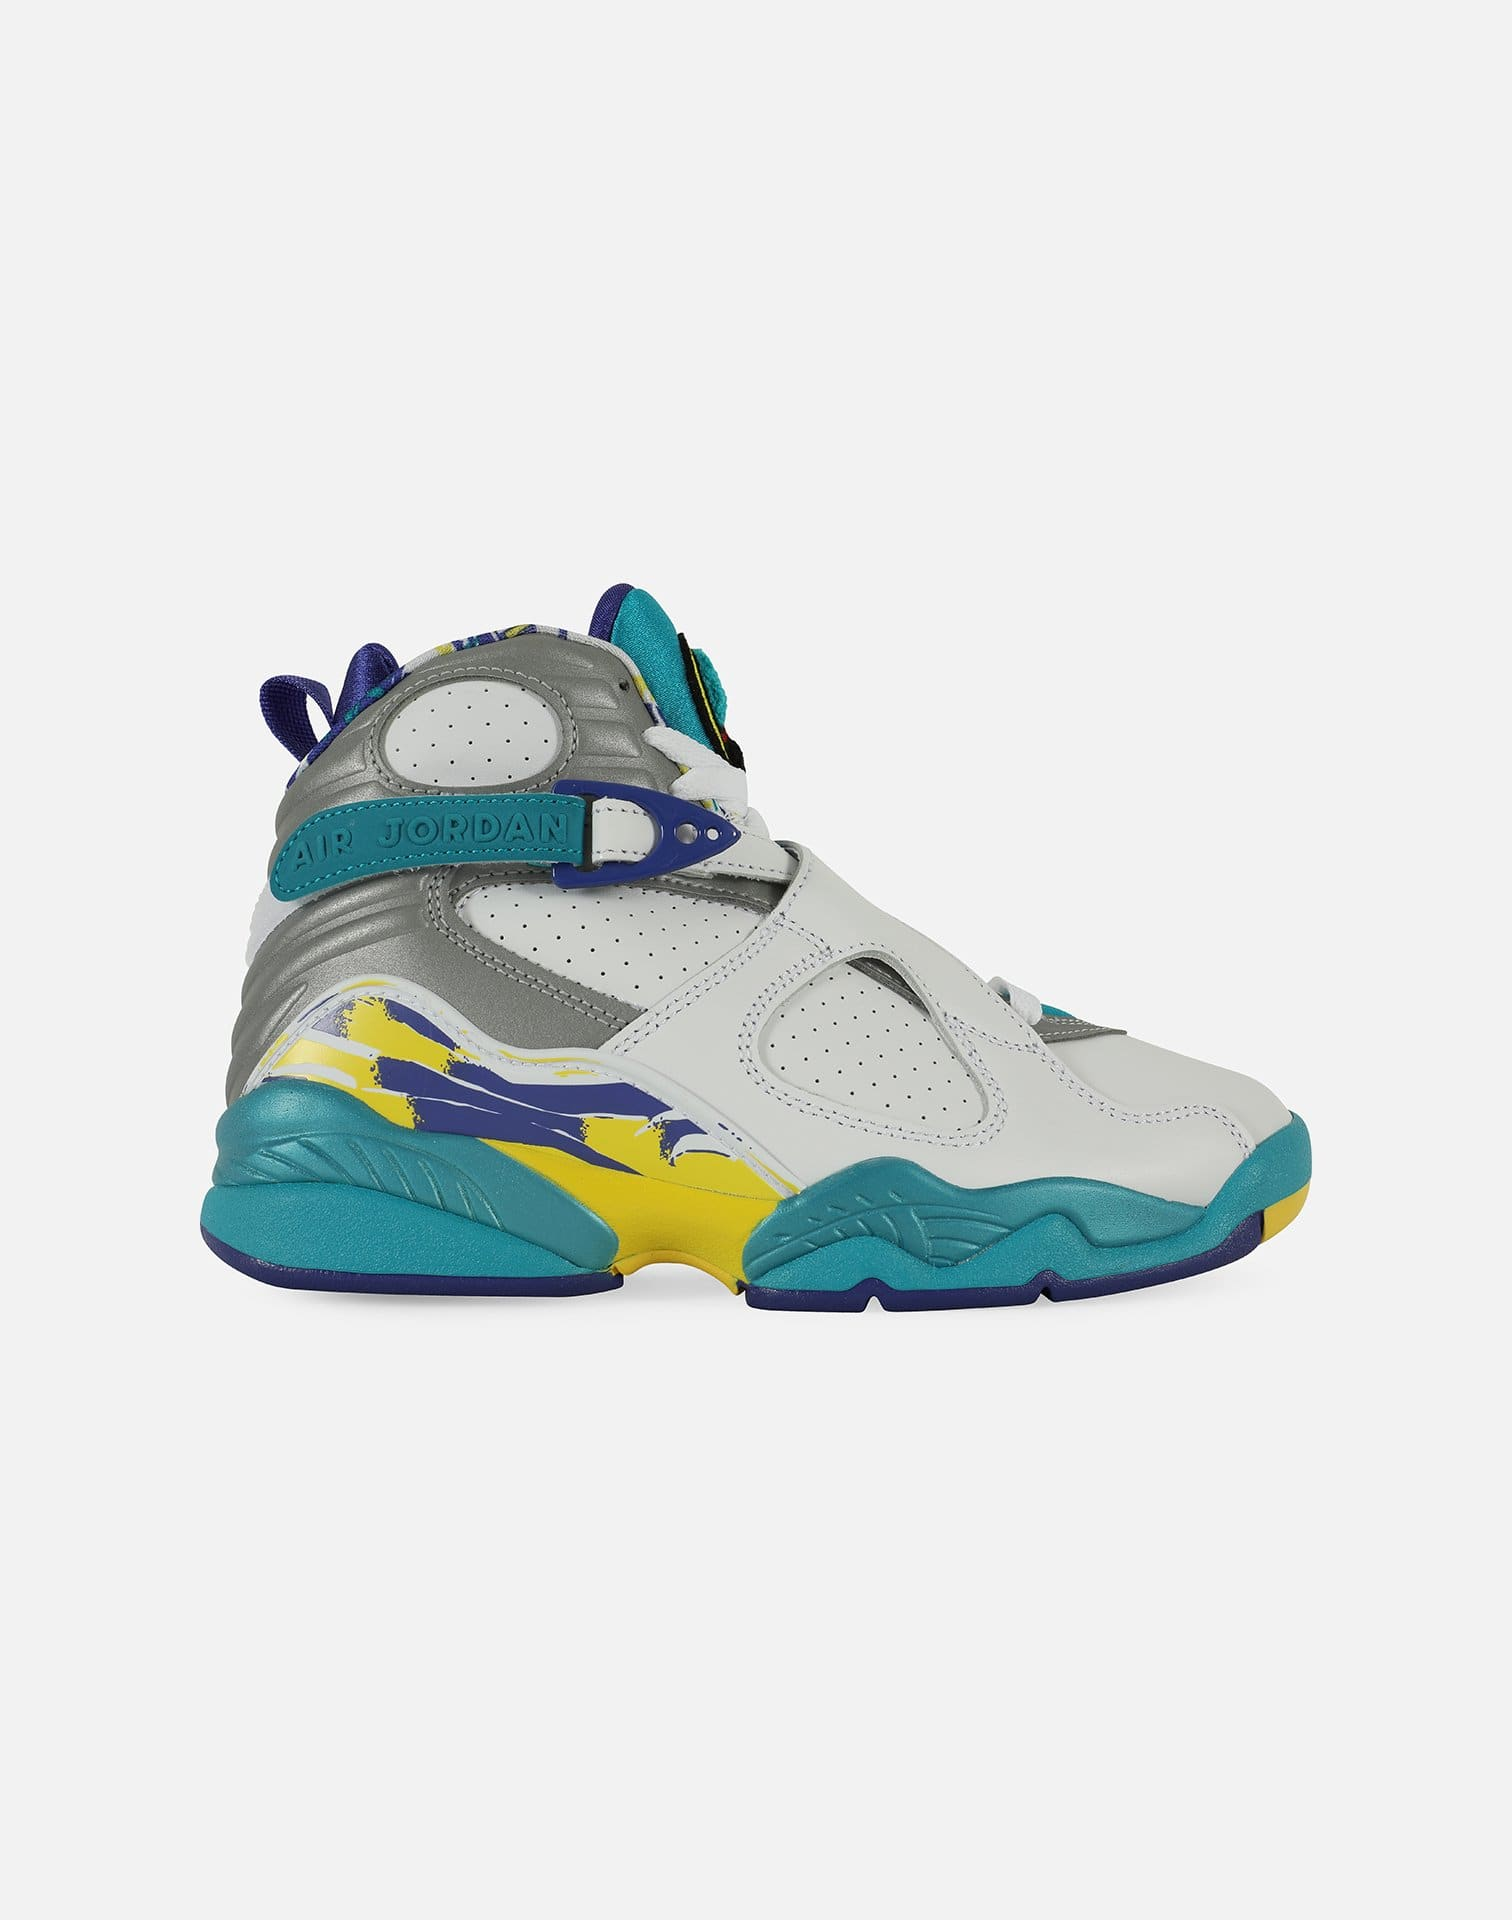 Jordan Women's Air Jordan Retro 8 'Aqua'